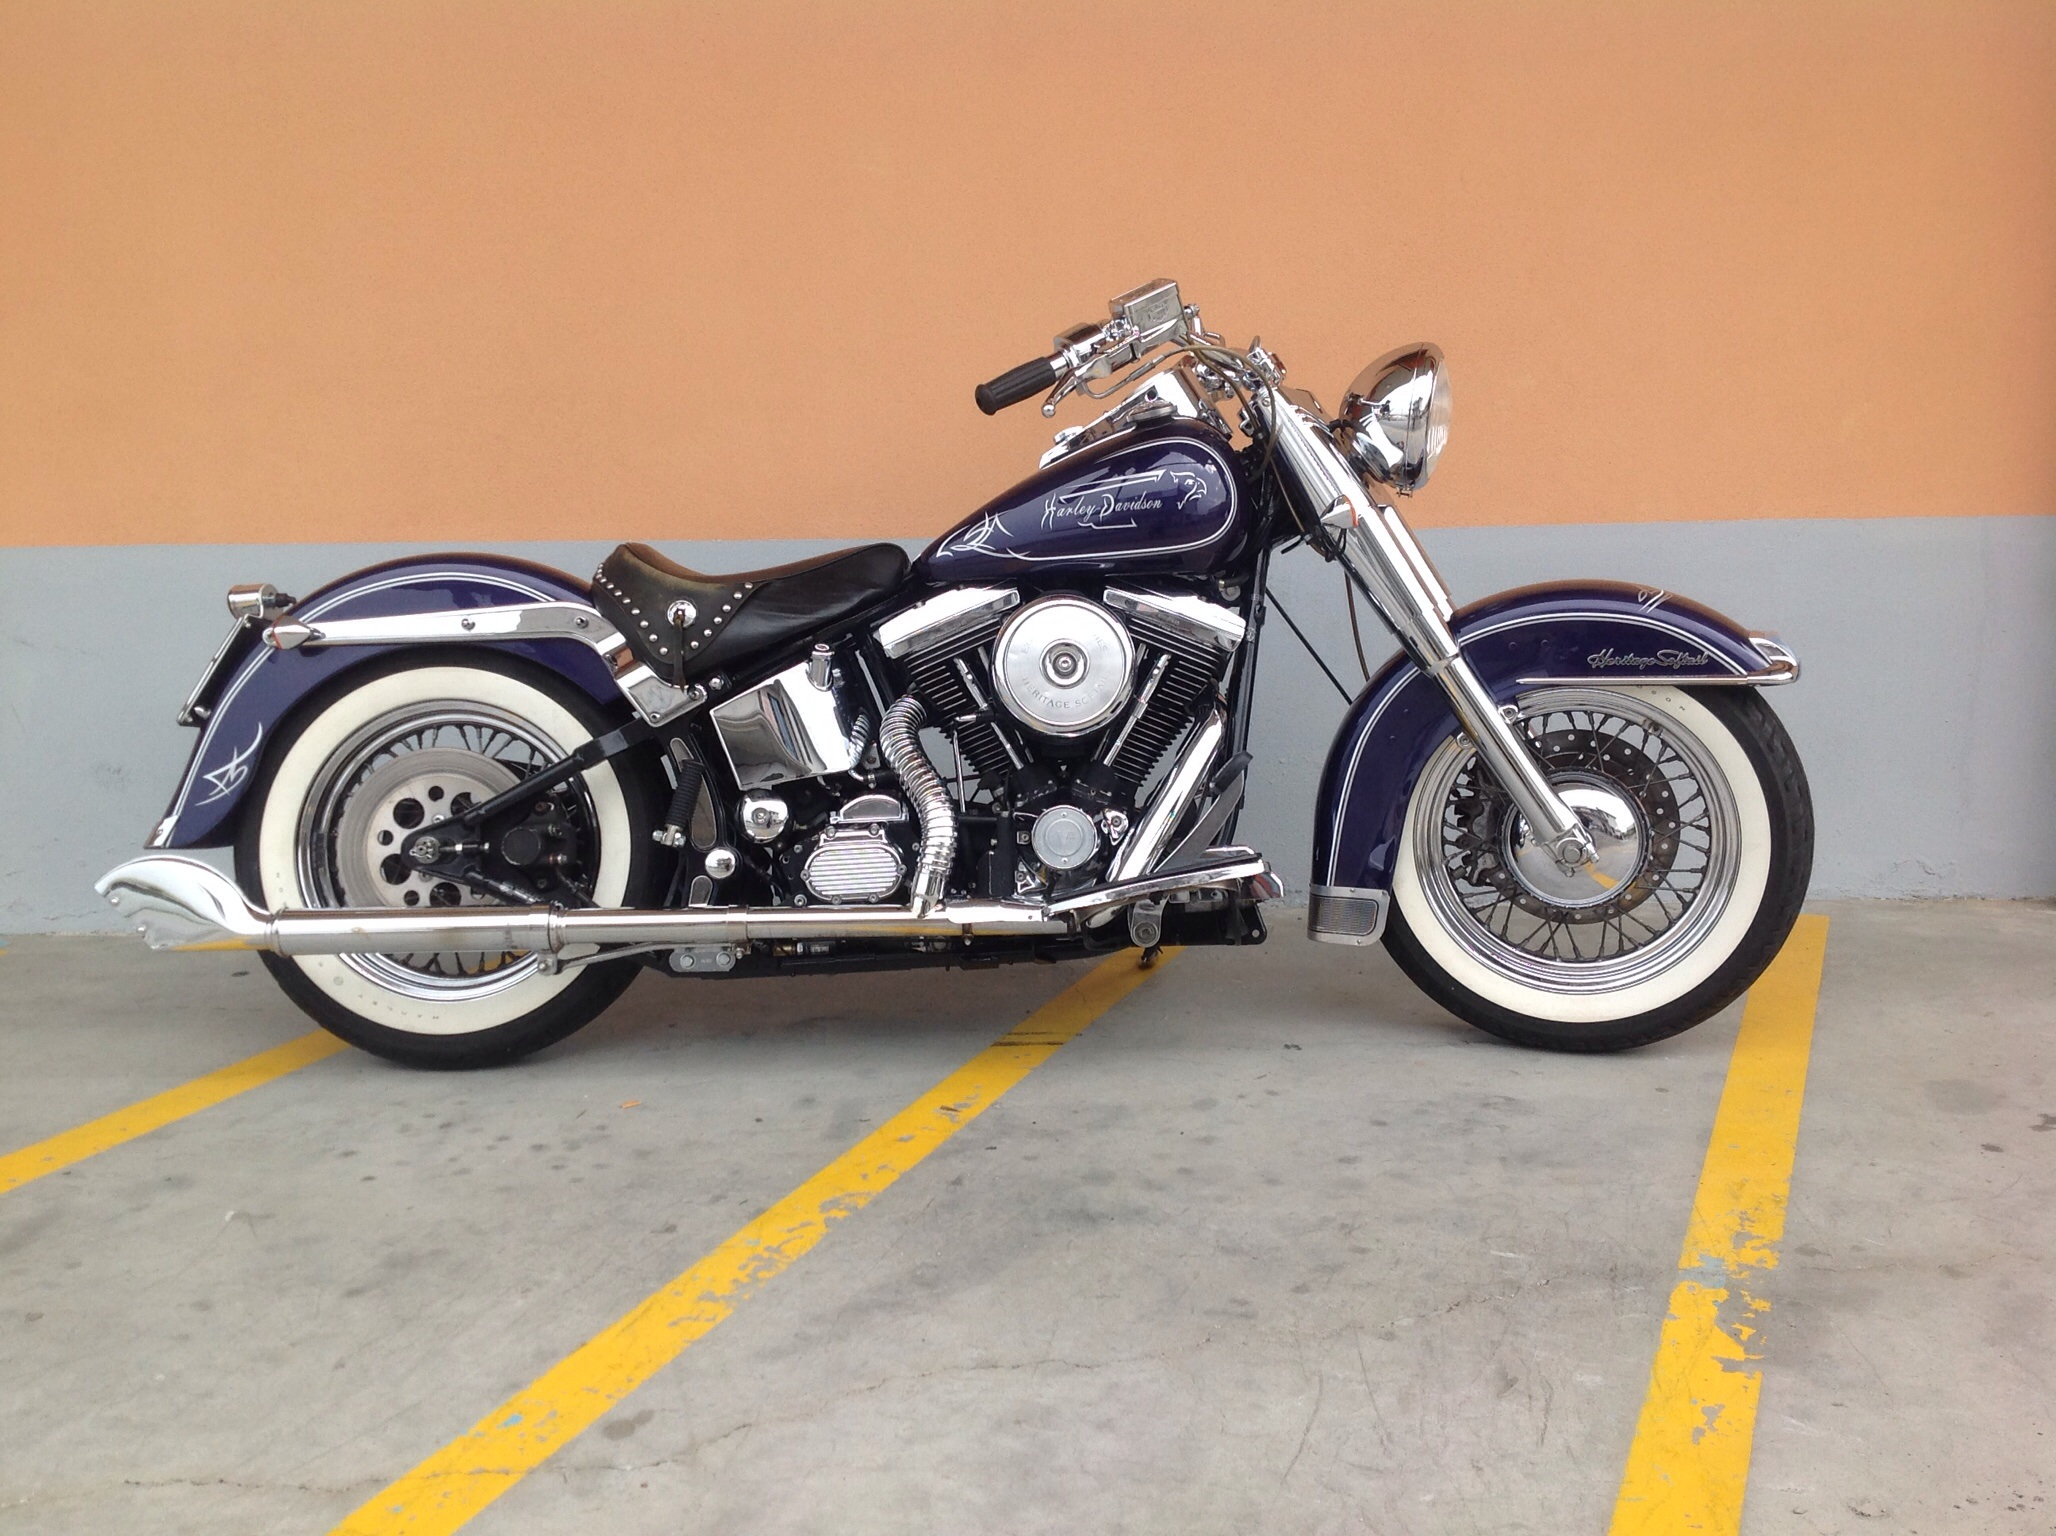 Harley-Davidson FXSTS Springer Softail 1997 images #79997